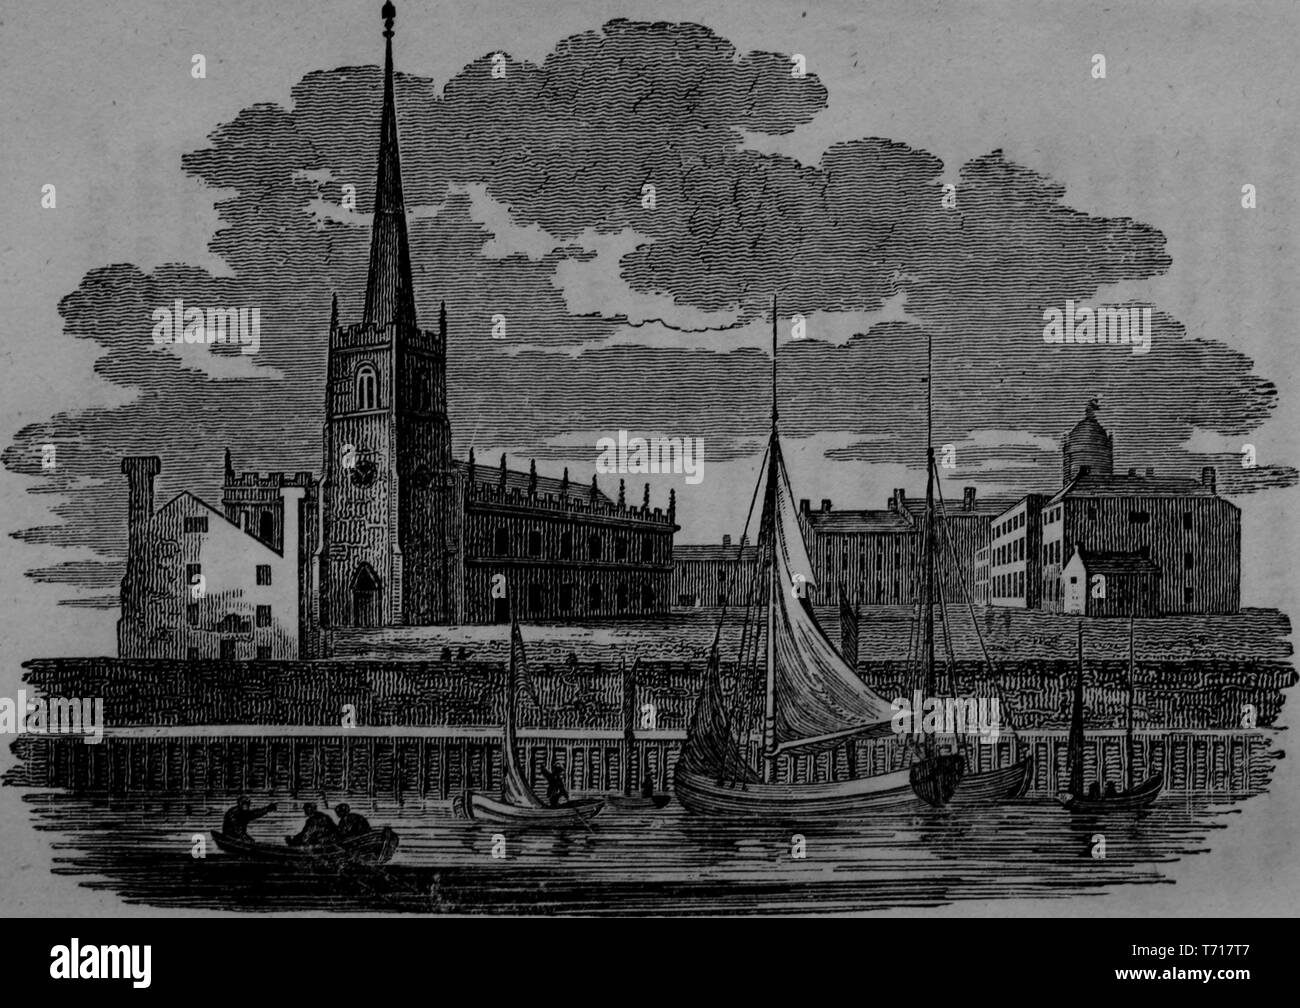 Engraving of the St. Nicola's Church or the old Church, from the book 'The picture of Liverpool' by Jones and Wright, 1808. Courtesy Internet Archive. () - Stock Image